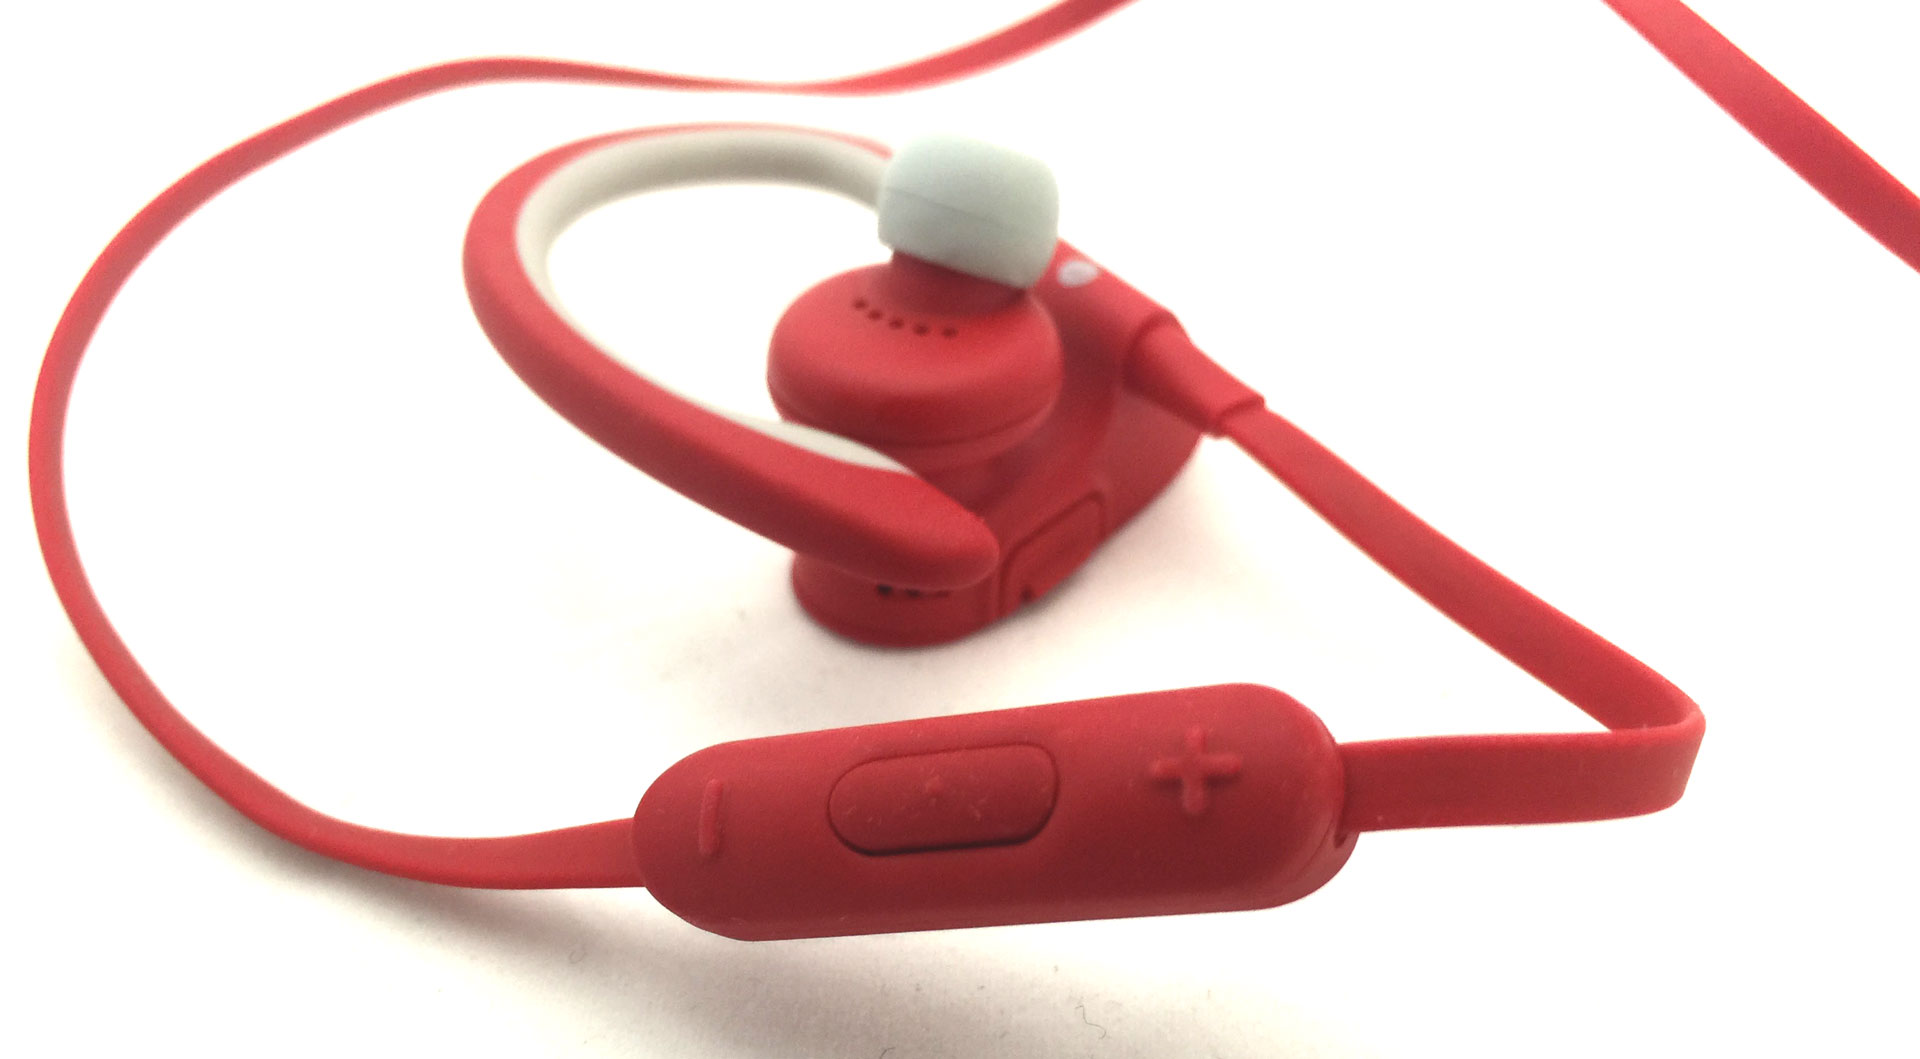 Beats-Powerbeats2-inline-remote